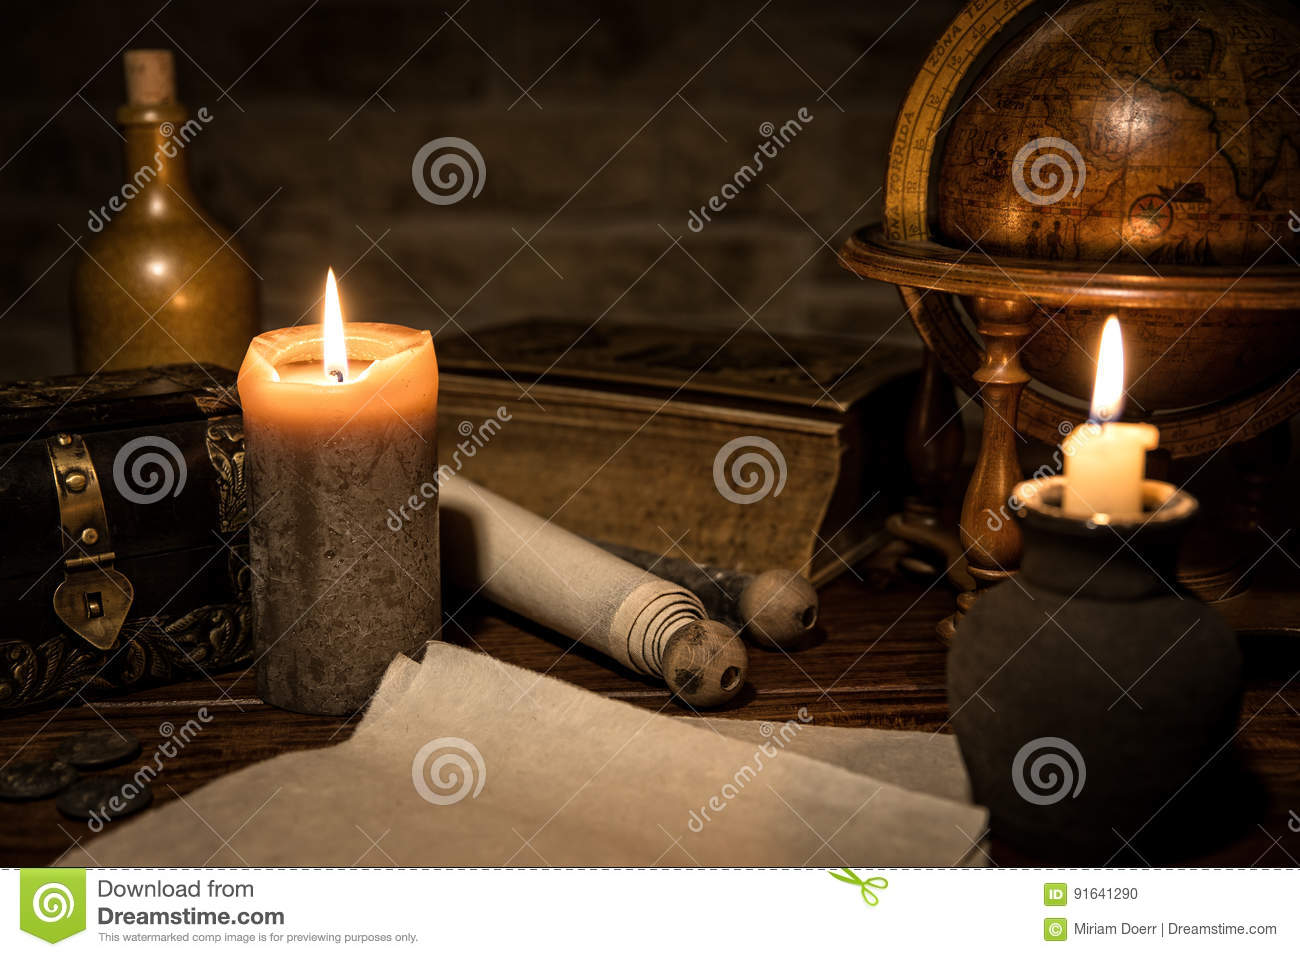 parchment paper, a old globe and candles, a old book and a wooden box, concept medieval background